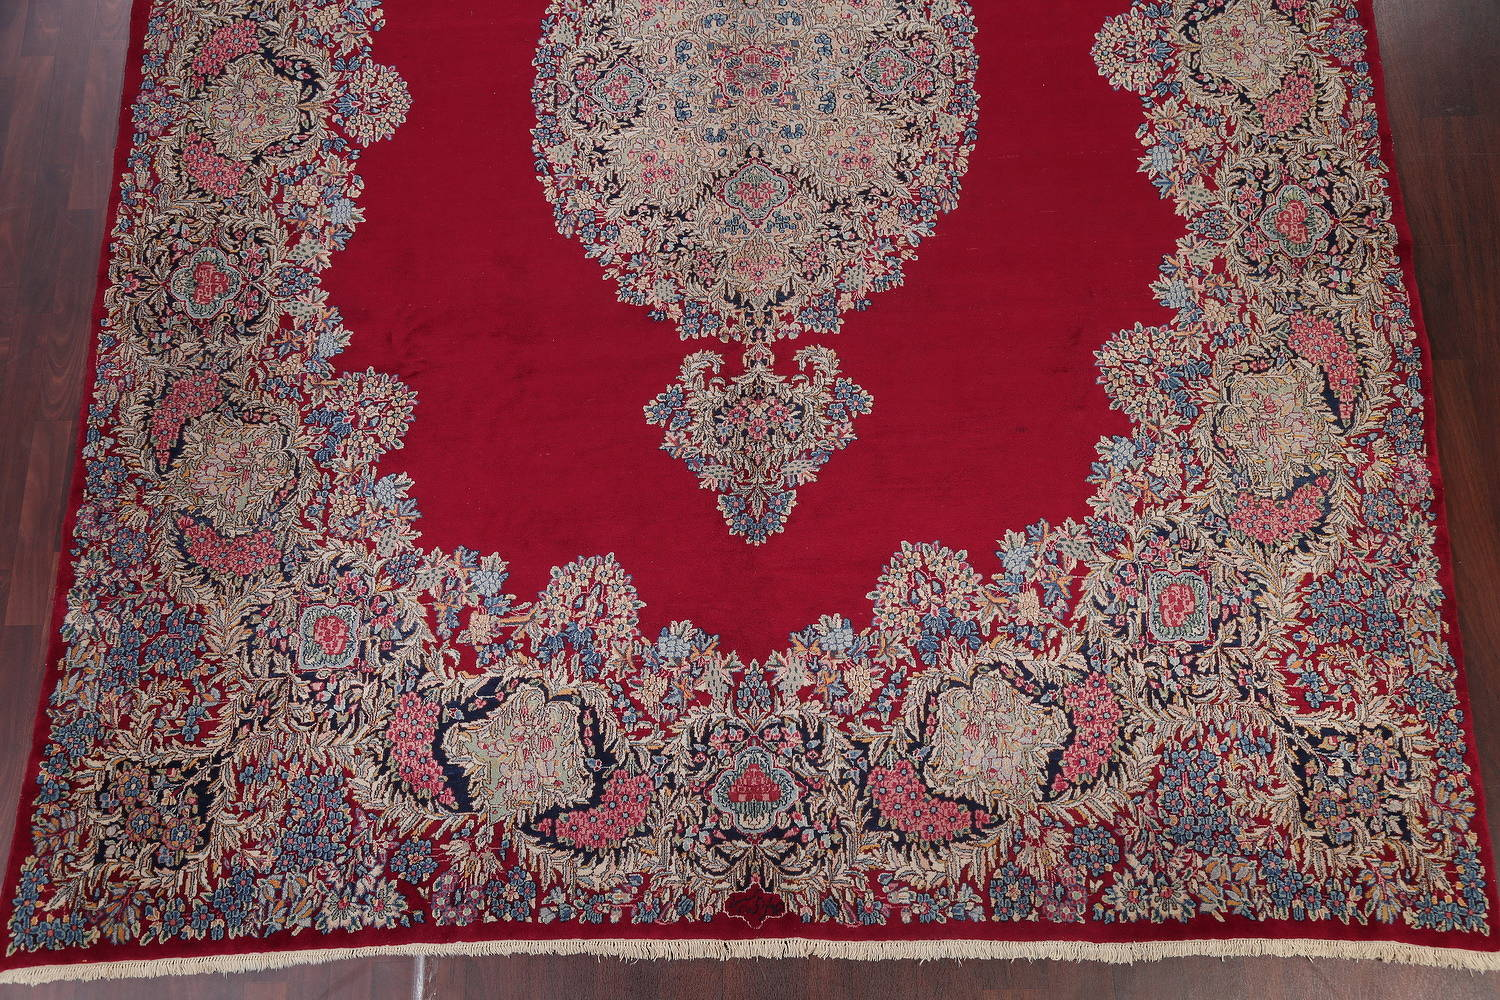 One-of-a-Kind Floral Red Kerman Persian Hand-Knotted 10x13 Area Rug Wool